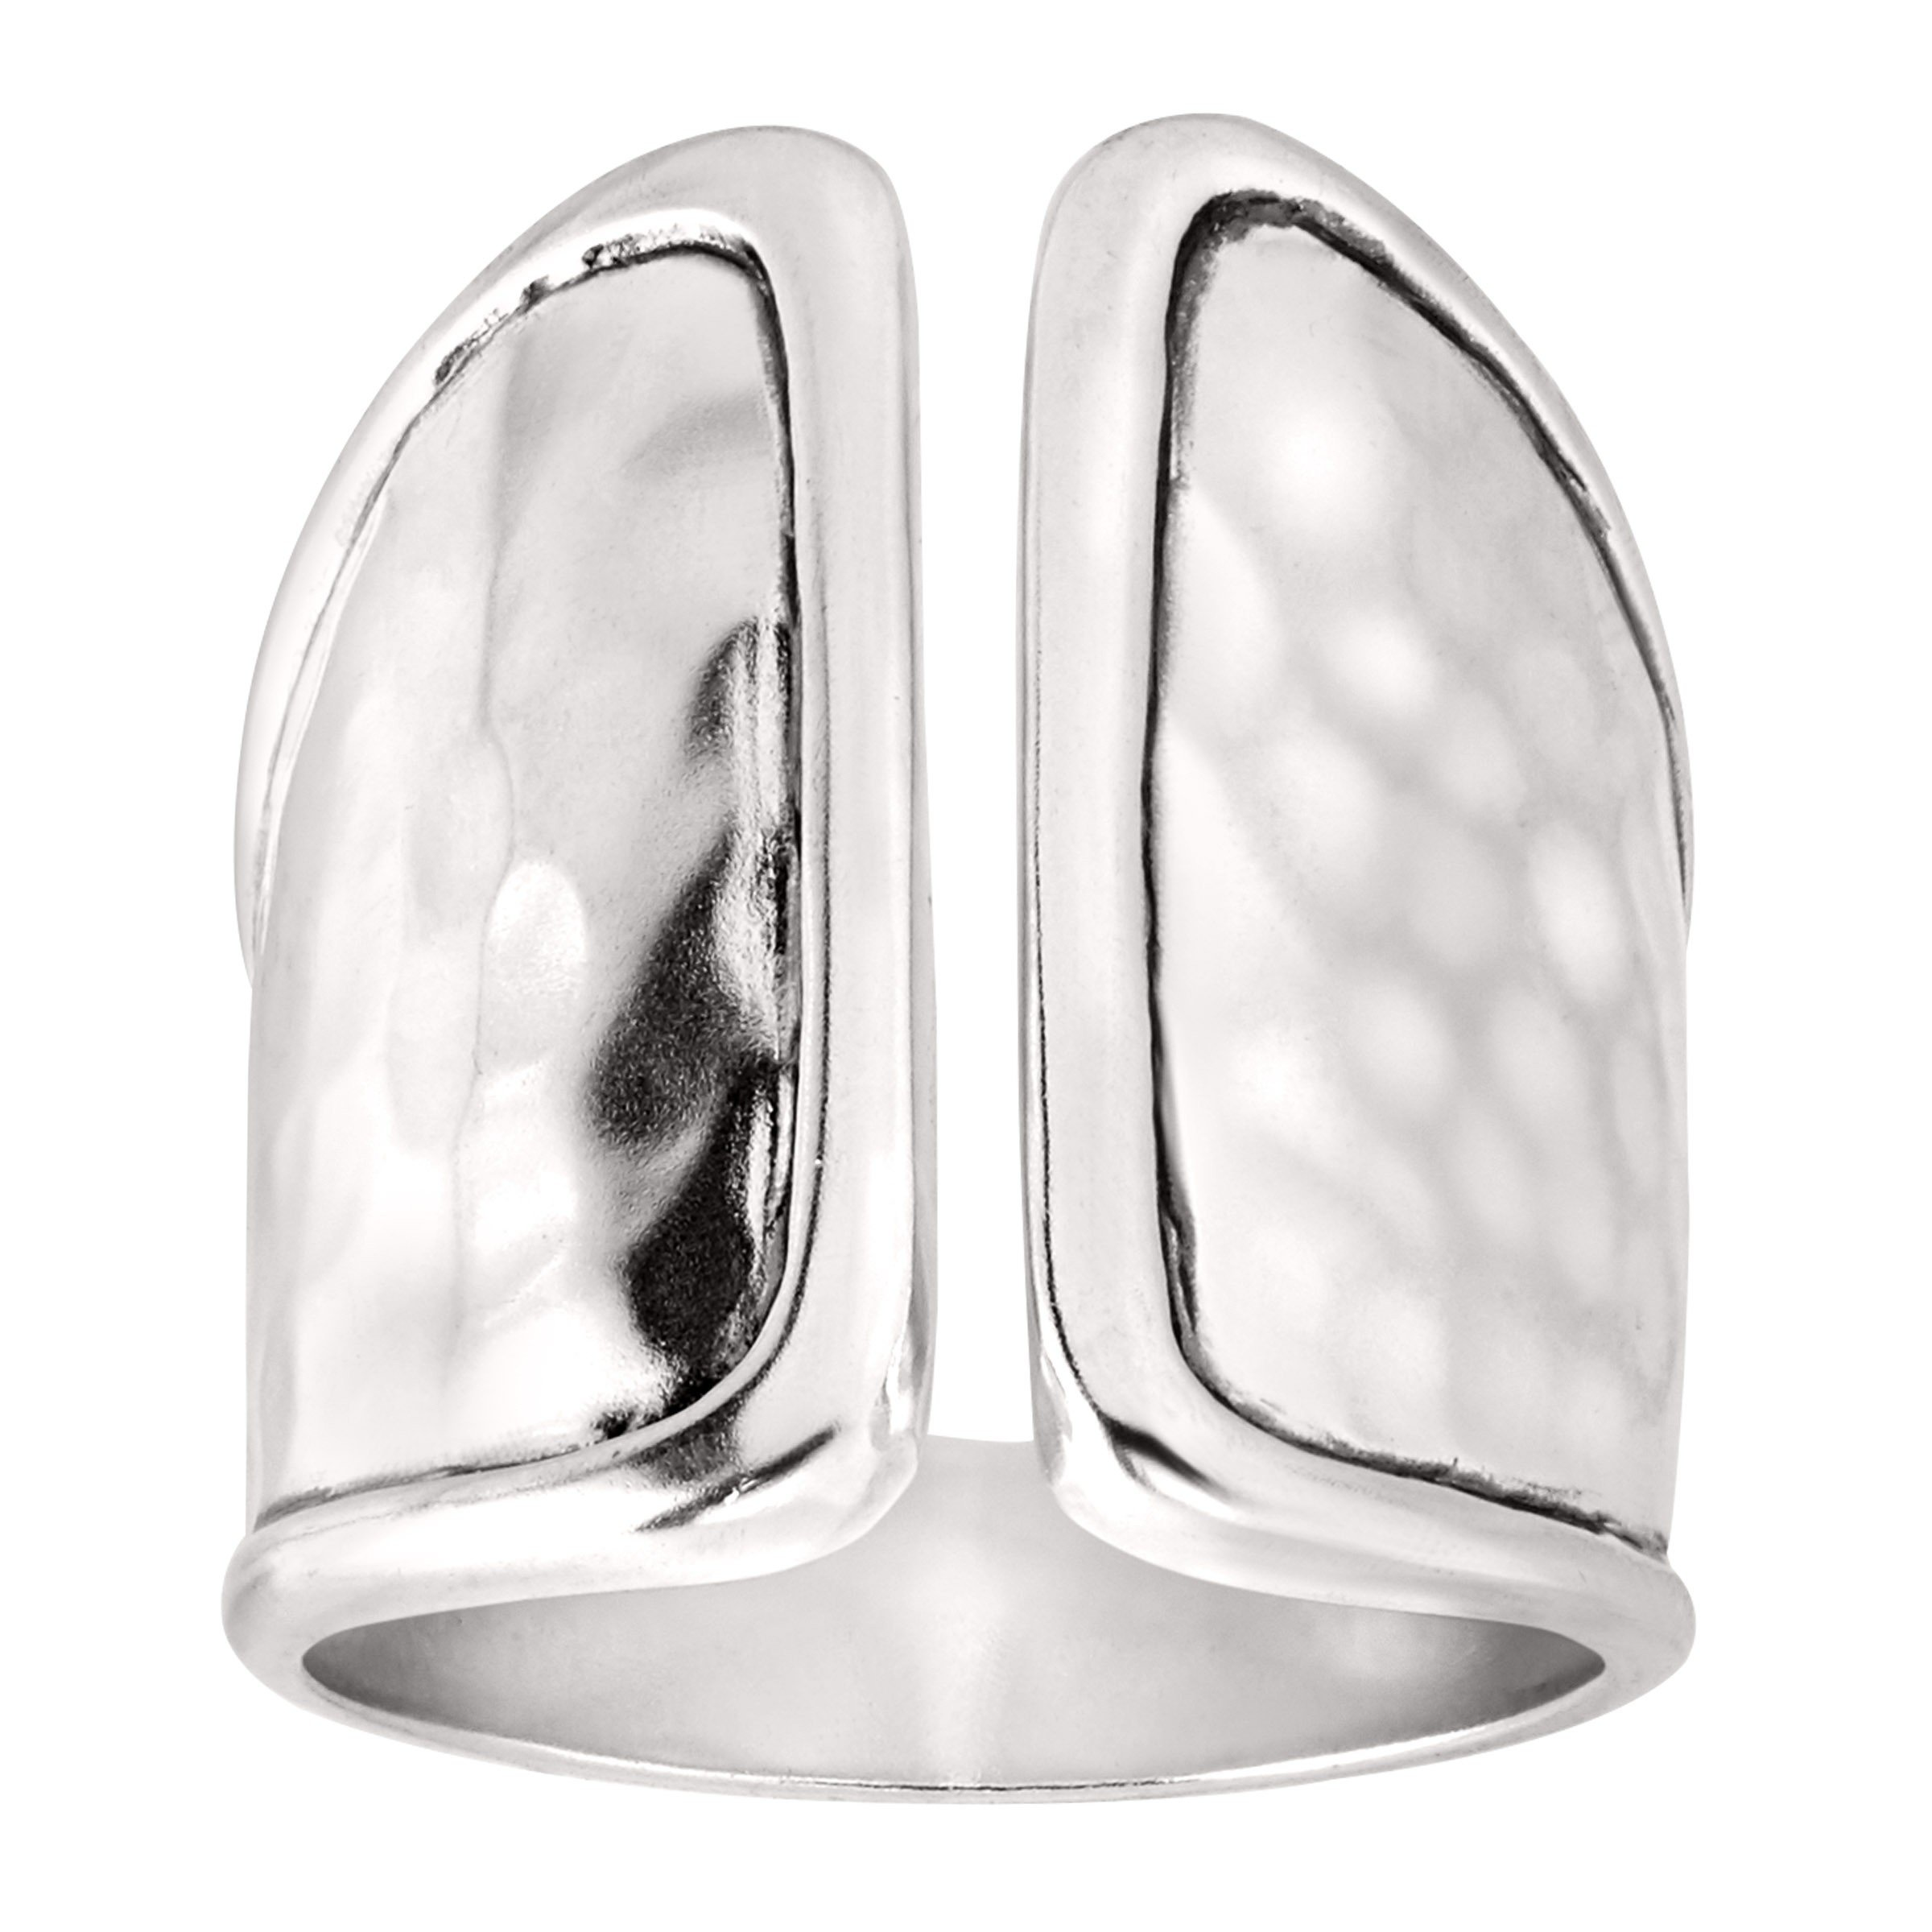 Silpada 'Divide' Sterling Silver Ring, Size 6